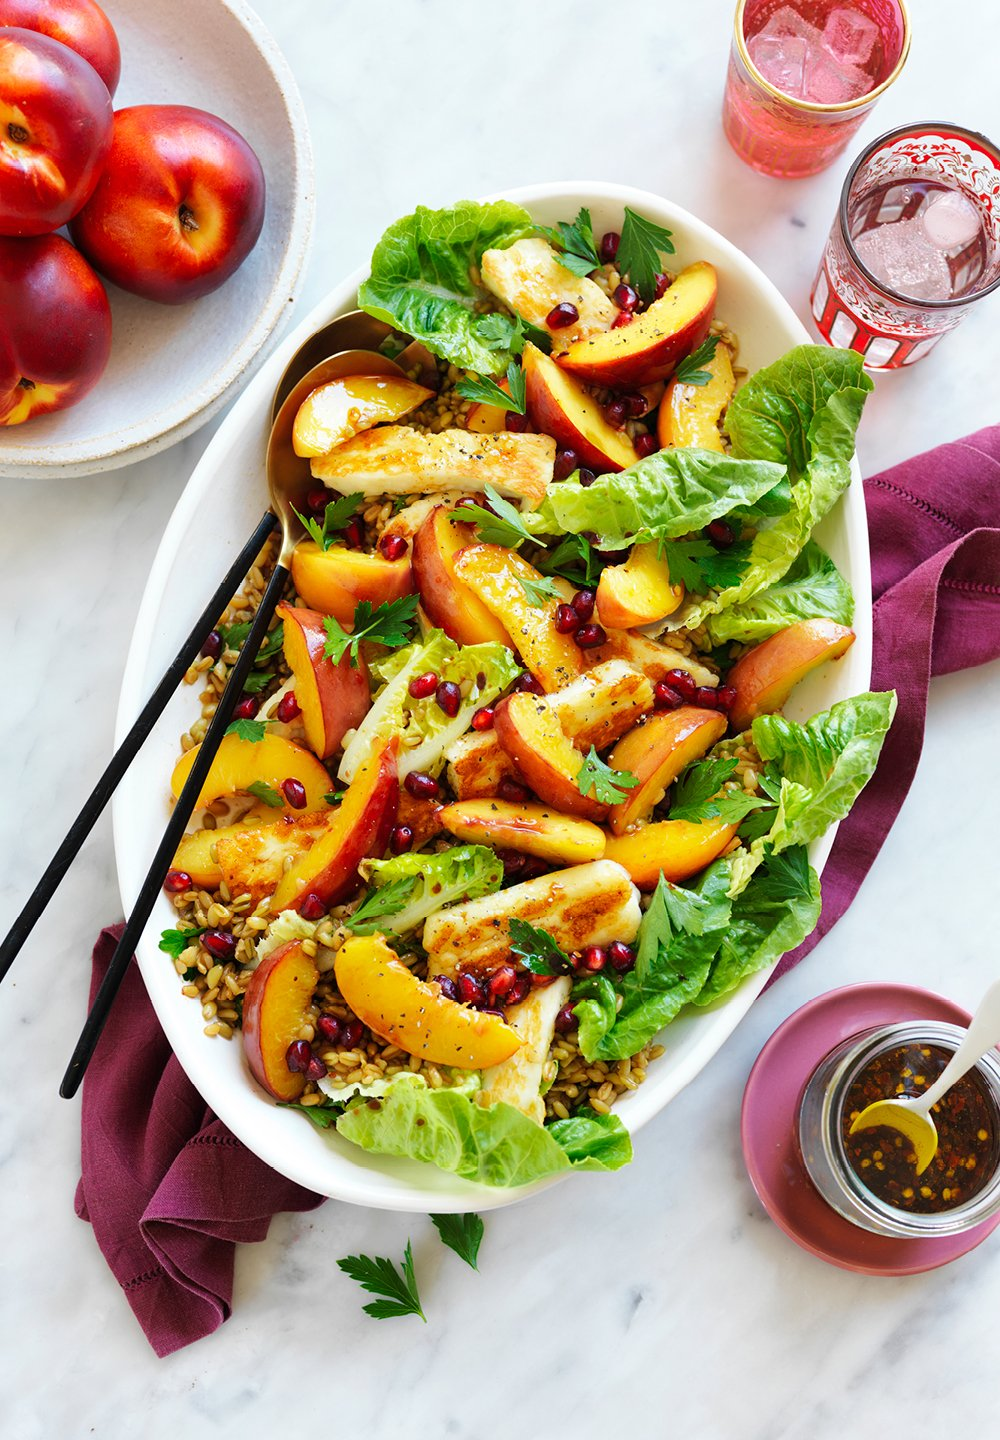 MIDDLE EASTERN-STYLE NECTARINE, HALOUMI AND FREEKEH SALAD